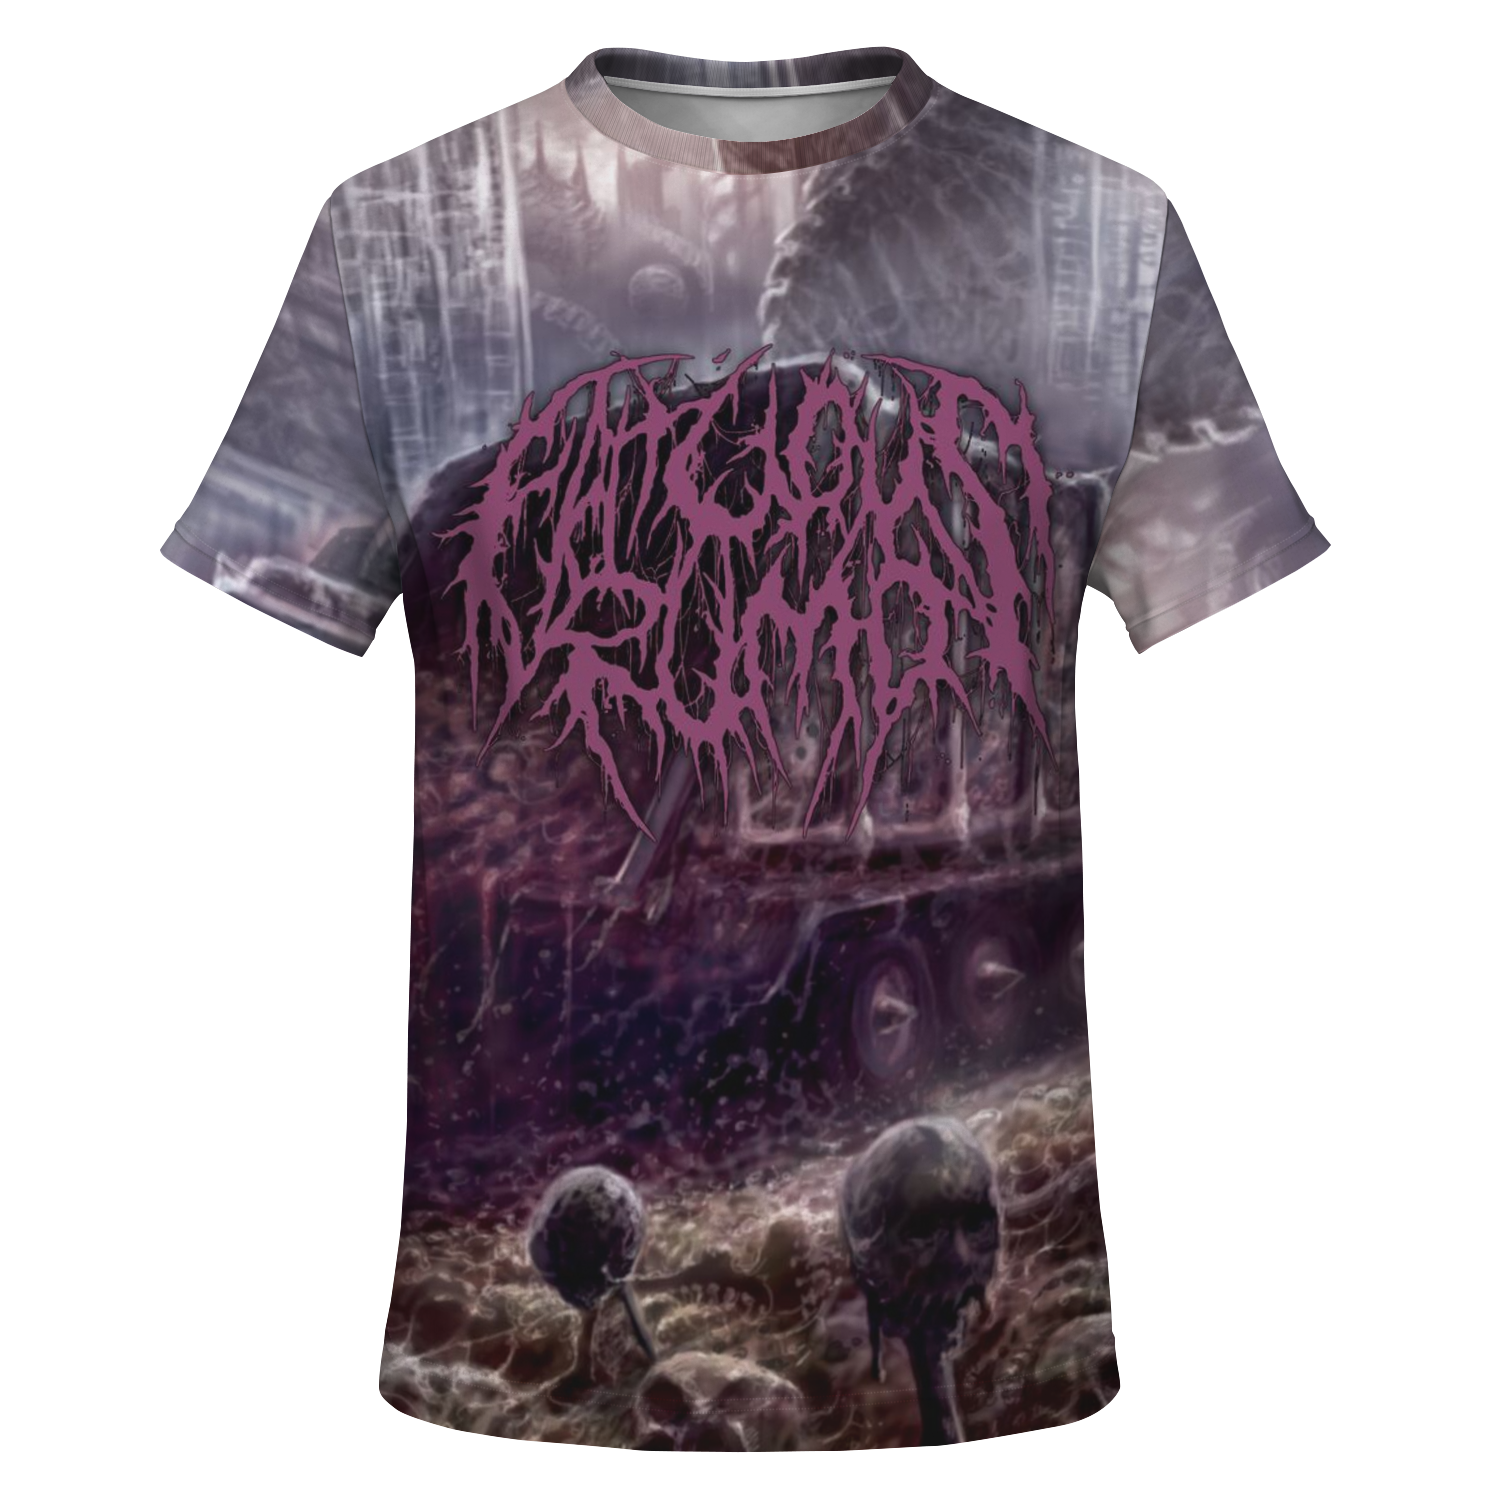 Officially Licensed Fatuous Rump - Disposing Slobs Of Corporal Fatberg All Over Tee